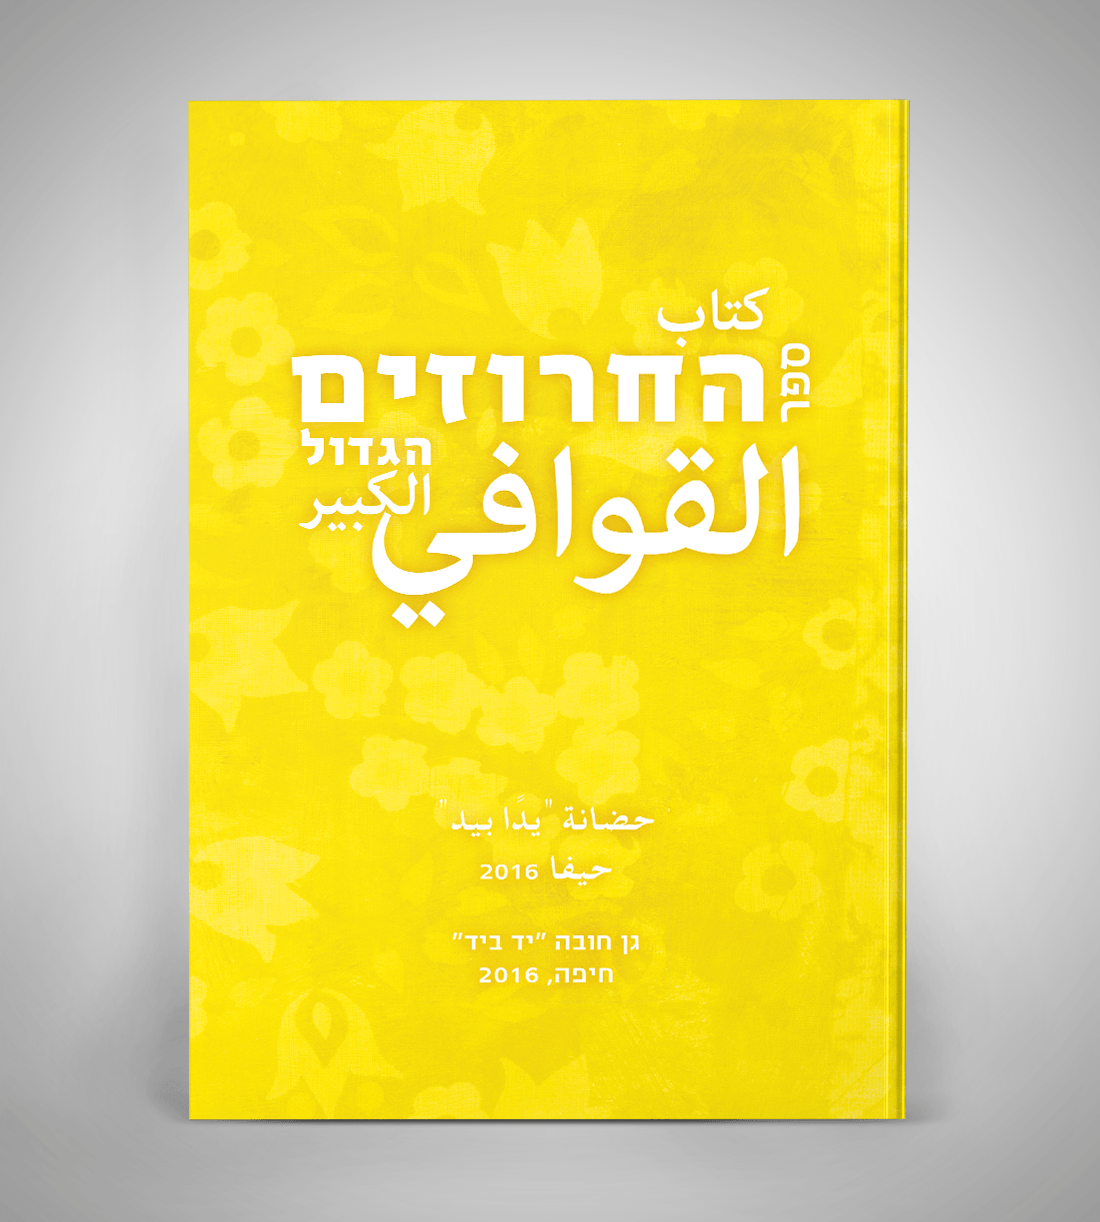 http://bigeyes.co.il/wp-content/uploads/2019/07/shtuzim-book-cover-1.png